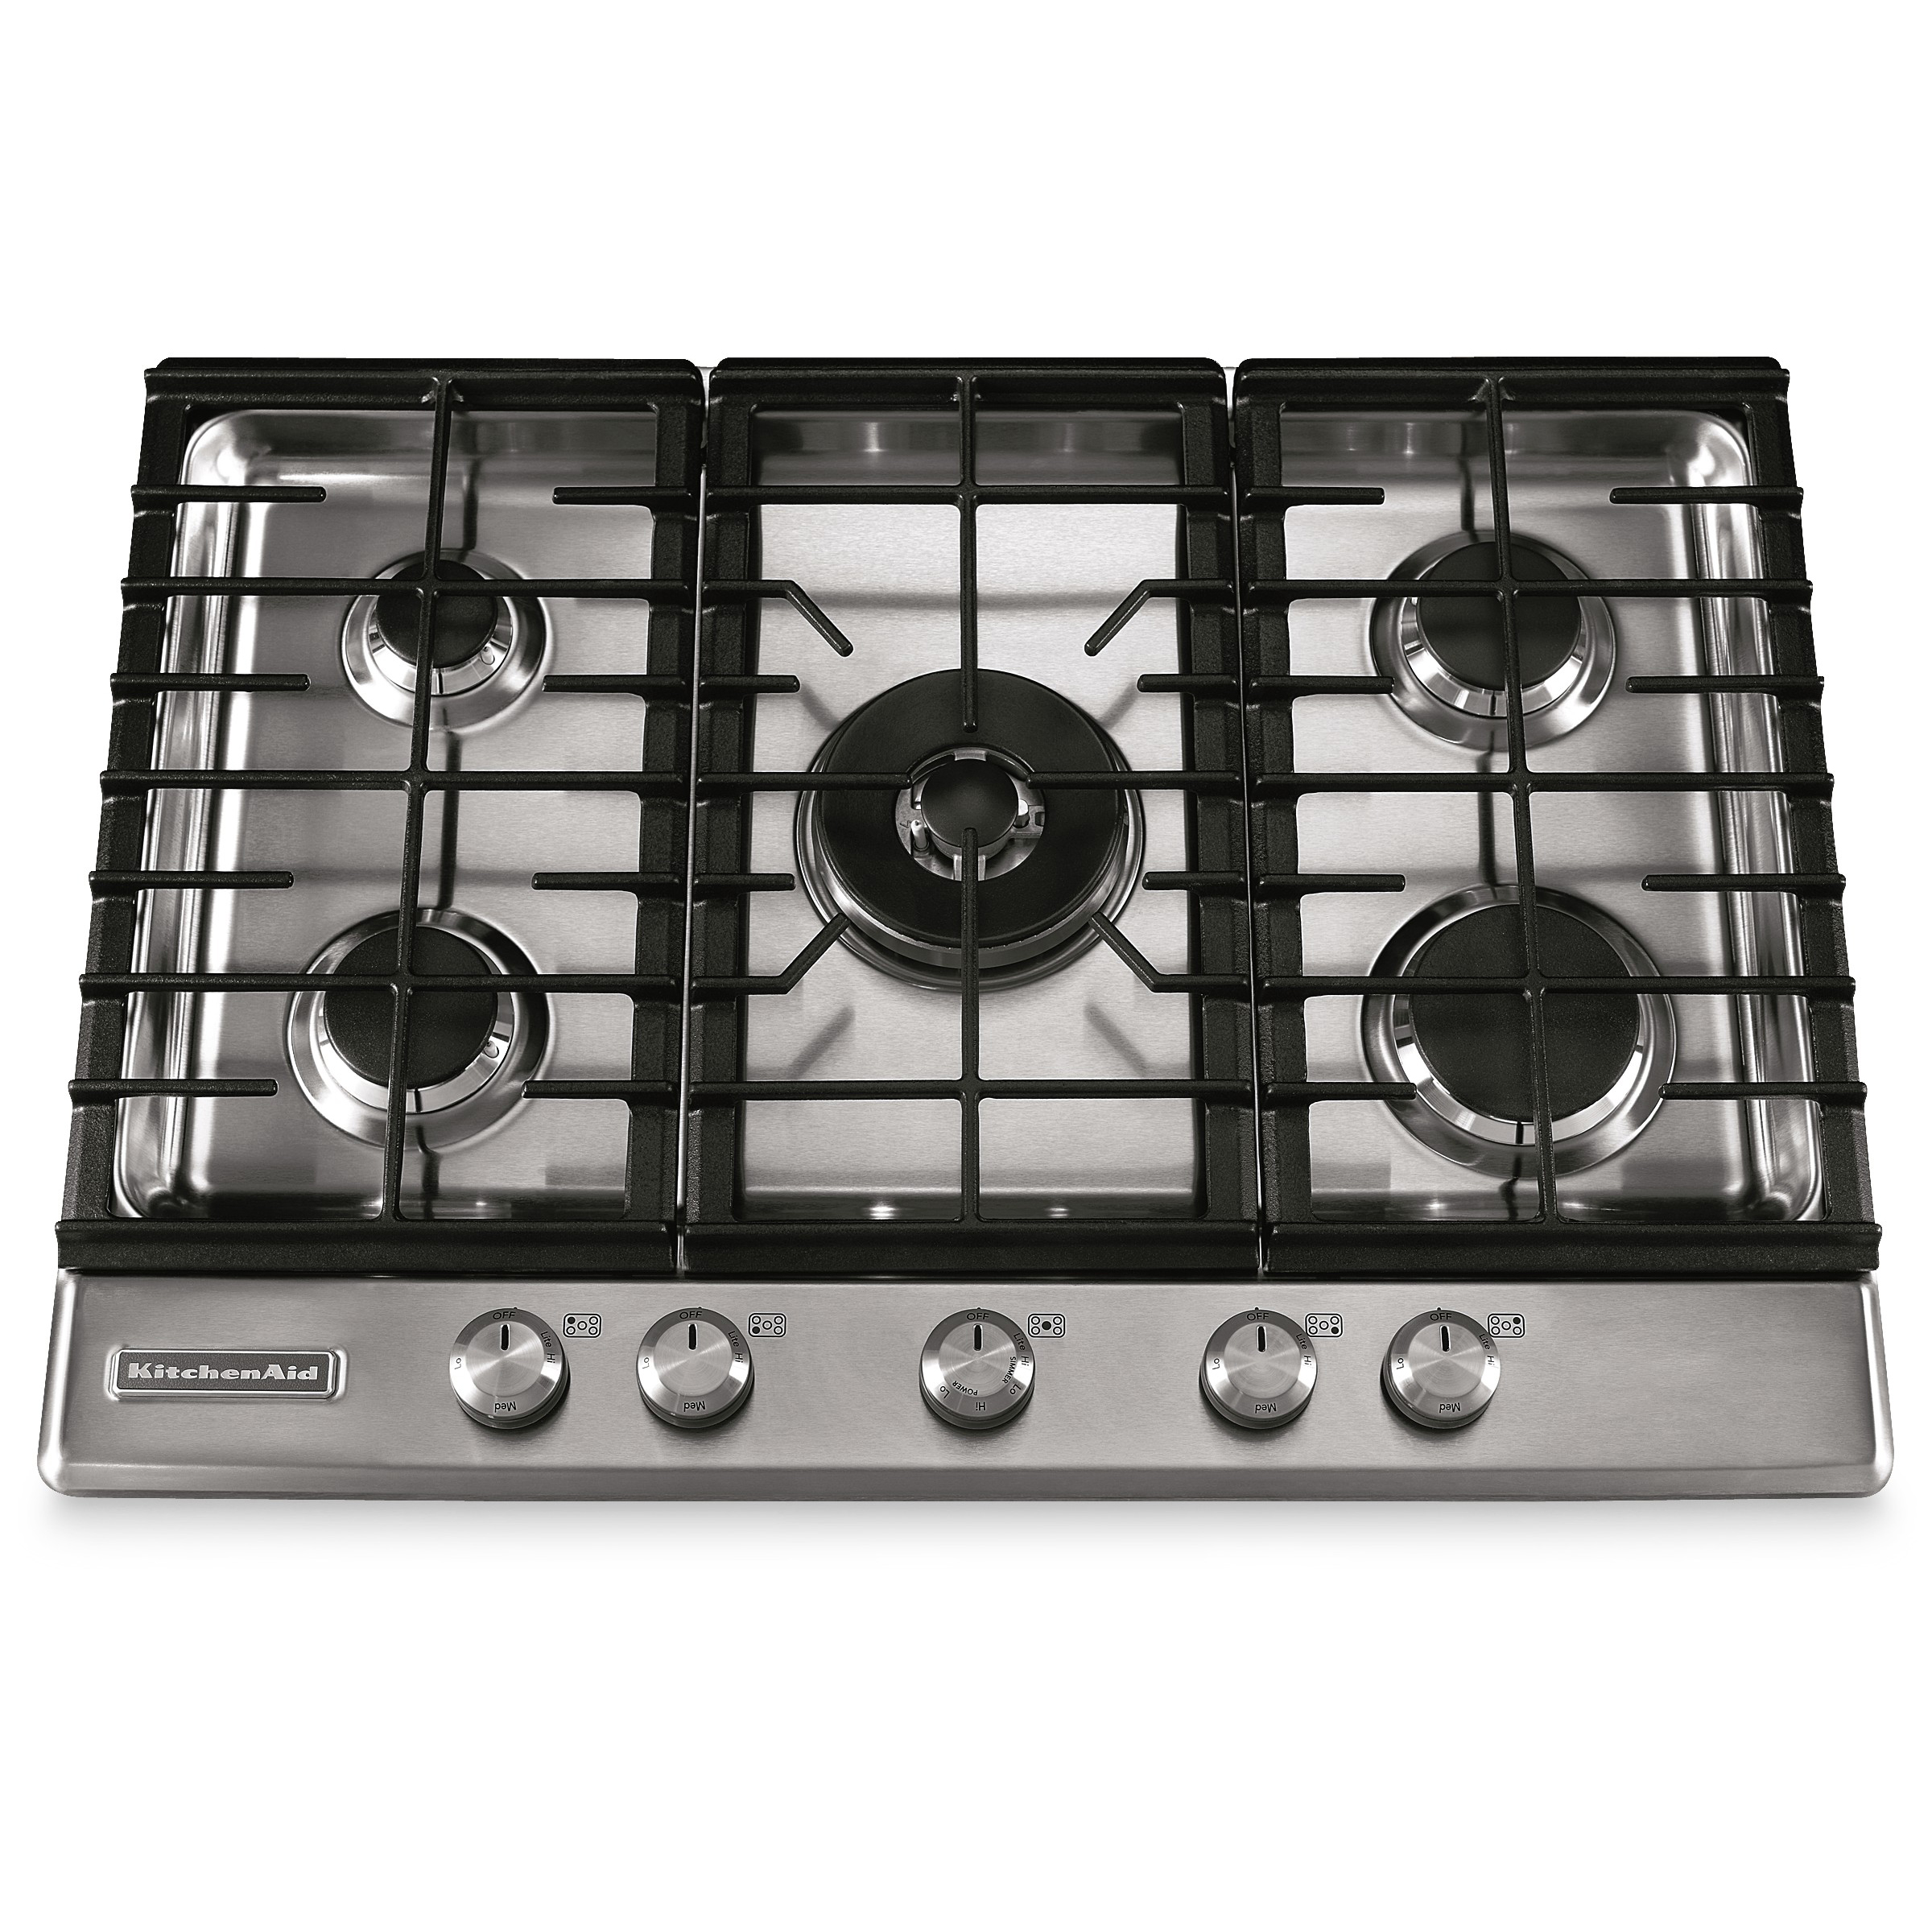 "KitchenAid 30"" Gas Cooktop"